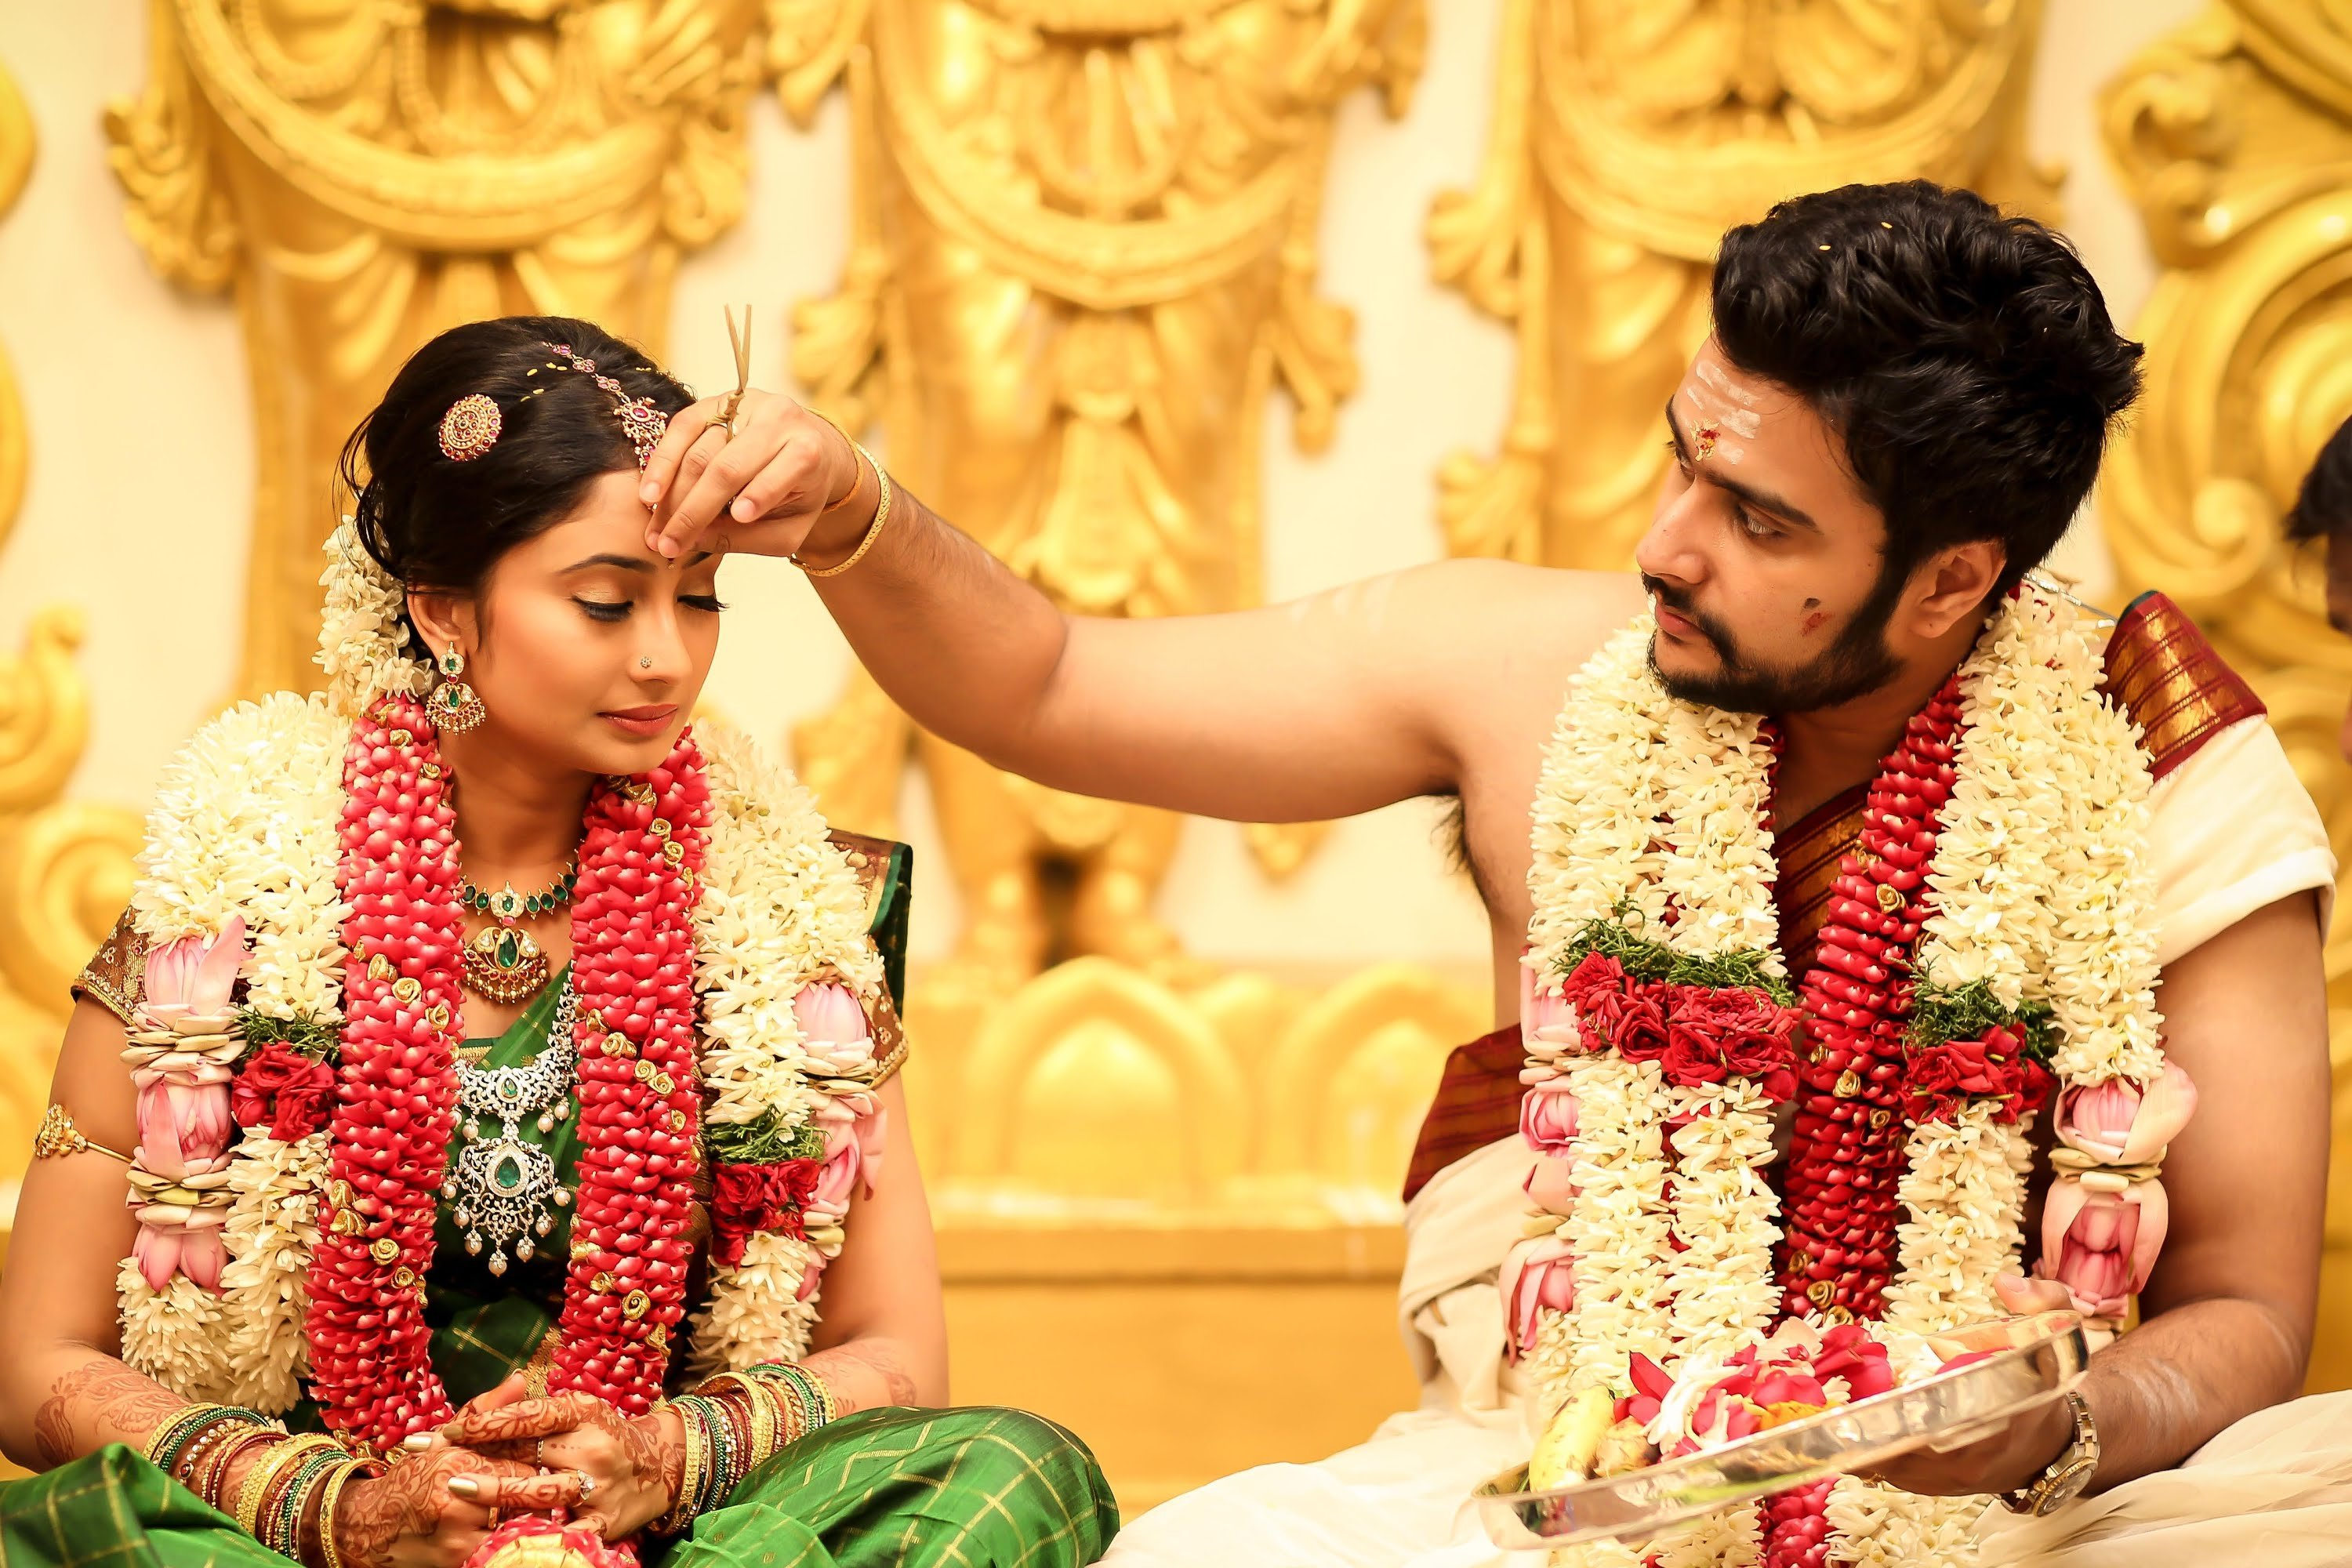 5 Things That Happen at Every Malayali Wedding You Won't See in Any